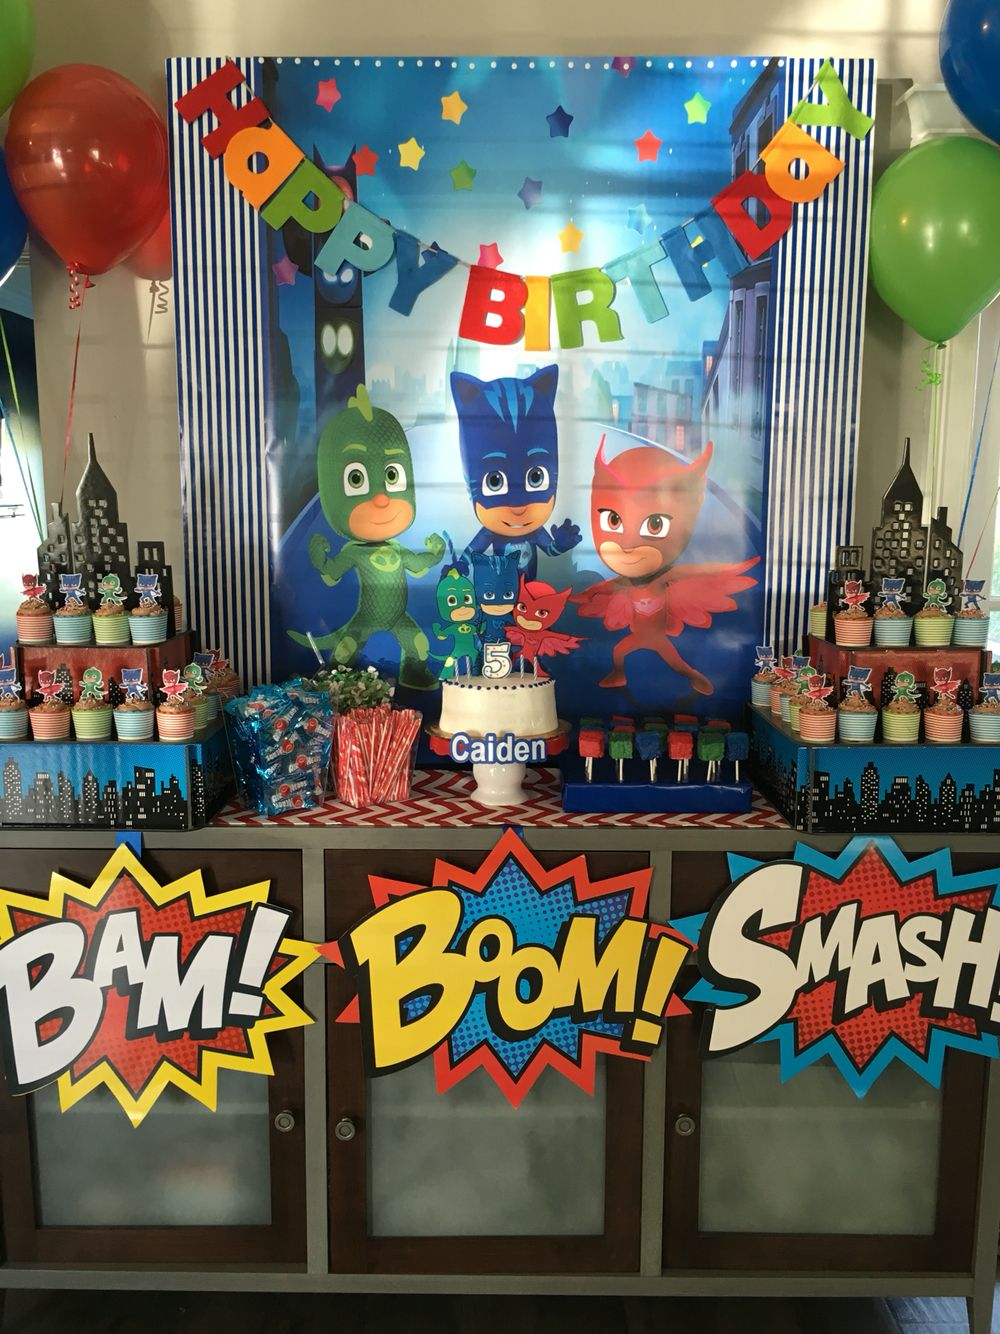 Pj Mask Party Decorations Stunning Festa A Tema Pj Masks_Buffet  Ideas  Pinterest  Pj Mask Mask 2018